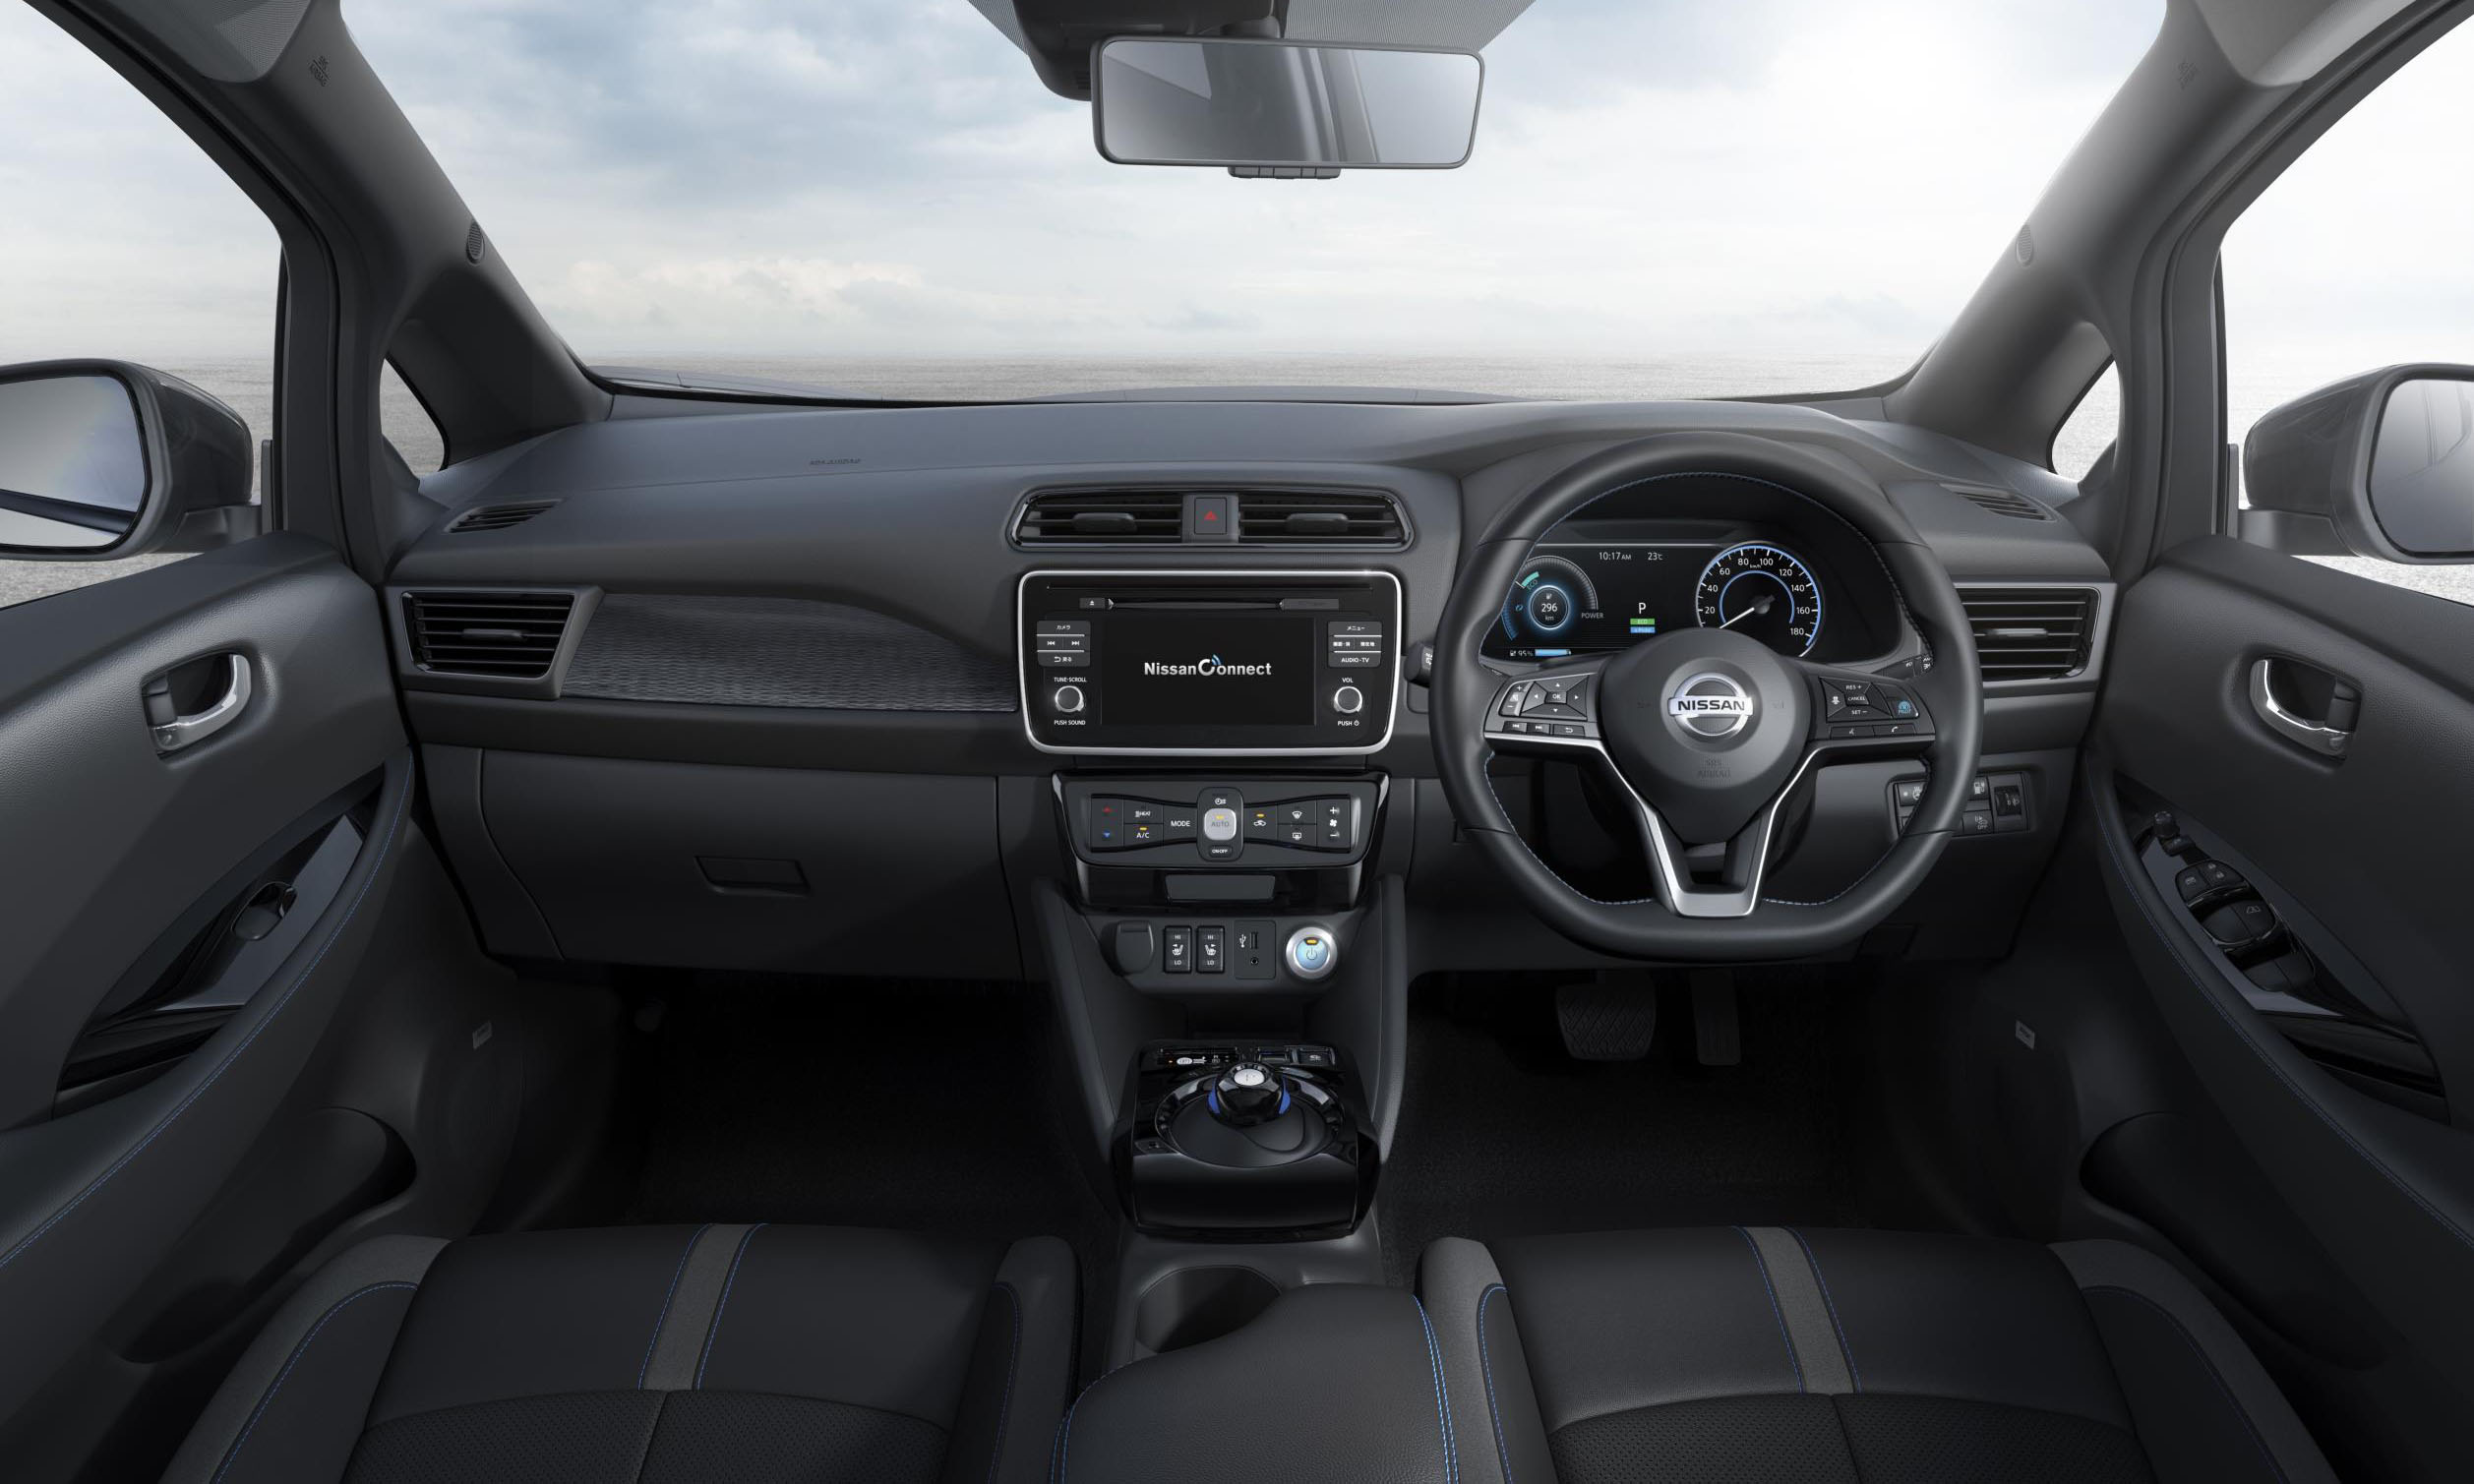 The new interior features a 7-inch TFT screen and climate control which can be activated via an app.